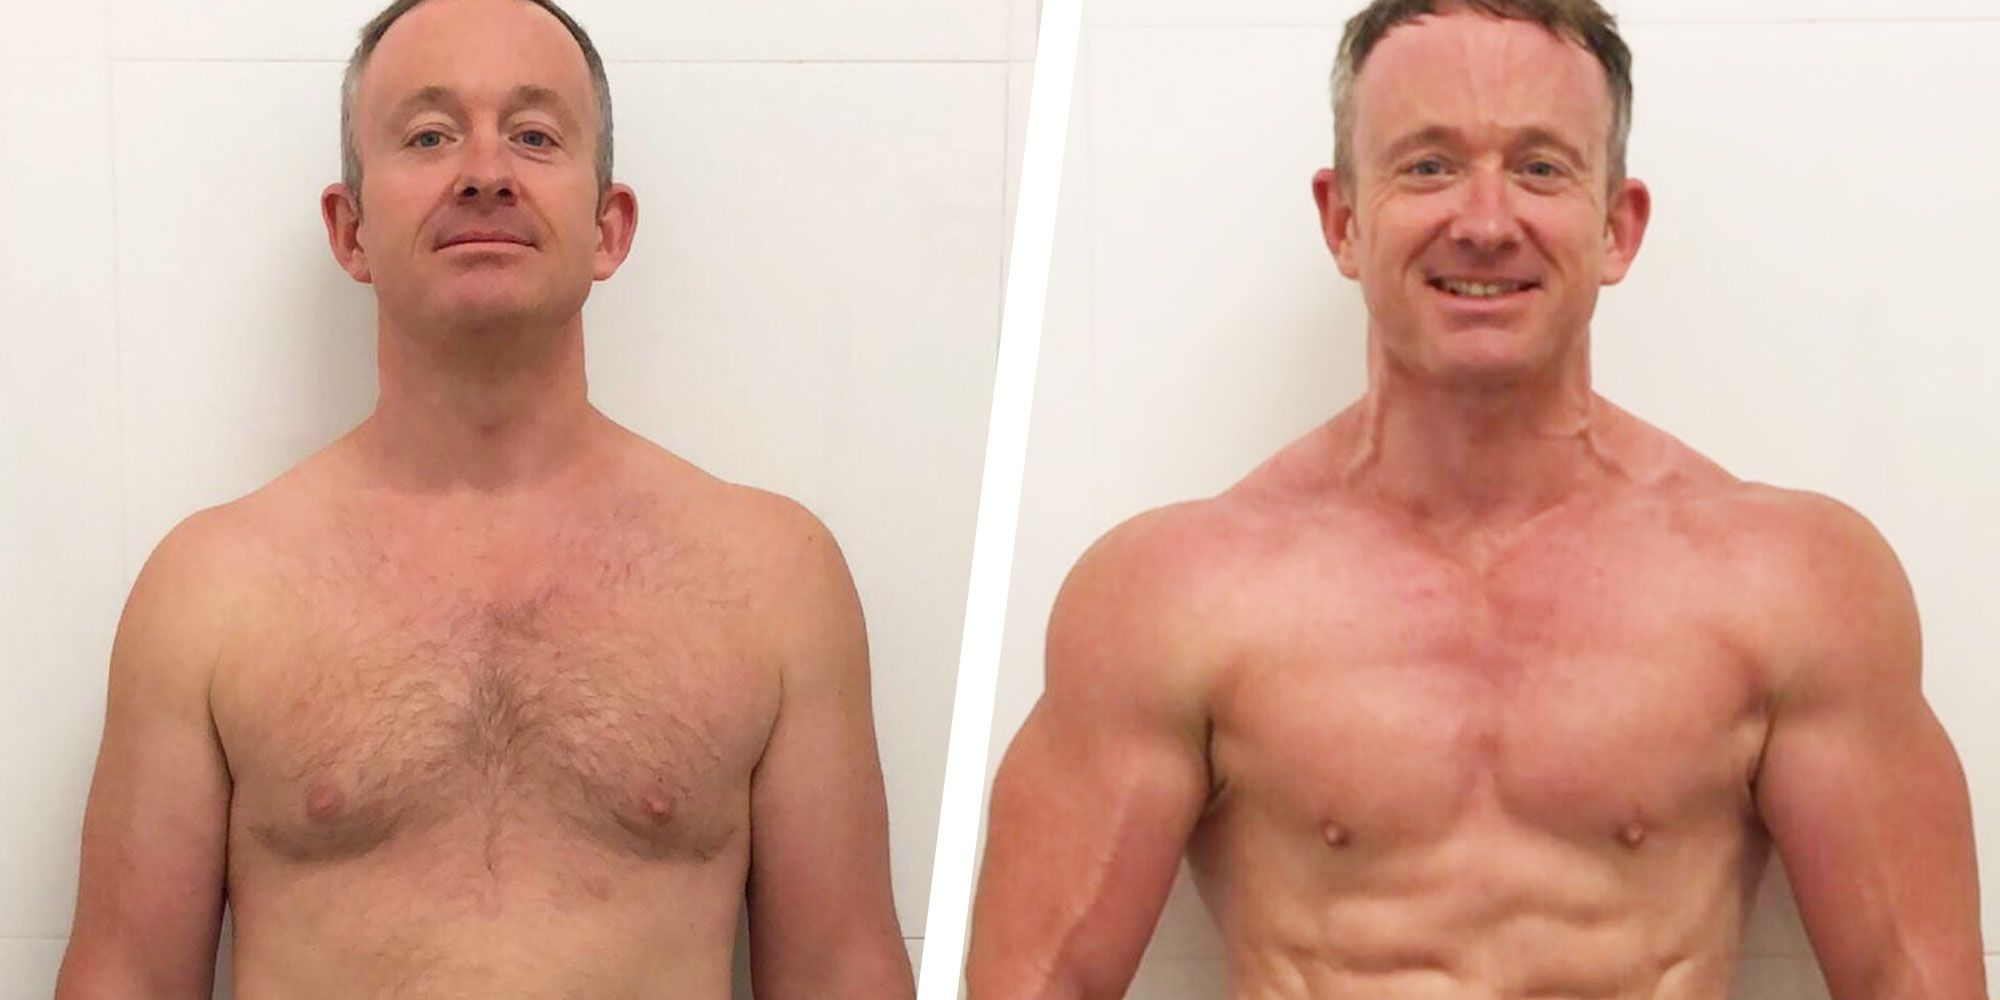 How a Few Small Diet Changes Helped This Guy Get Ripped